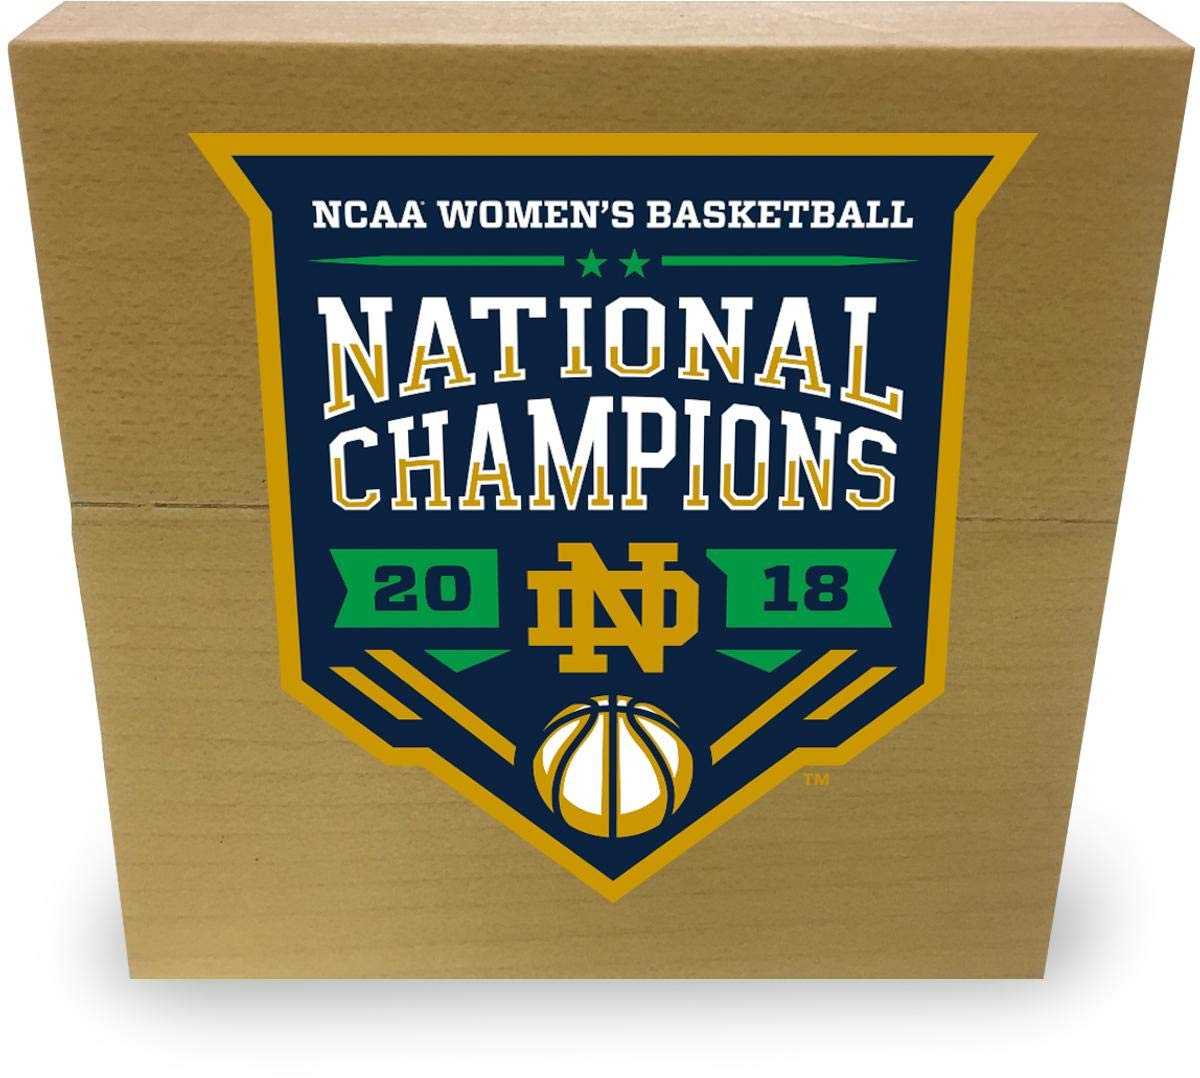 Notre Dame Fighting Irish 2018 NCAA Women's Basketball National Champions 3' x 3' Game-Used Court from the 2018 Final Four - with Championship Logo Sticker - Fanatics Authentic Certified